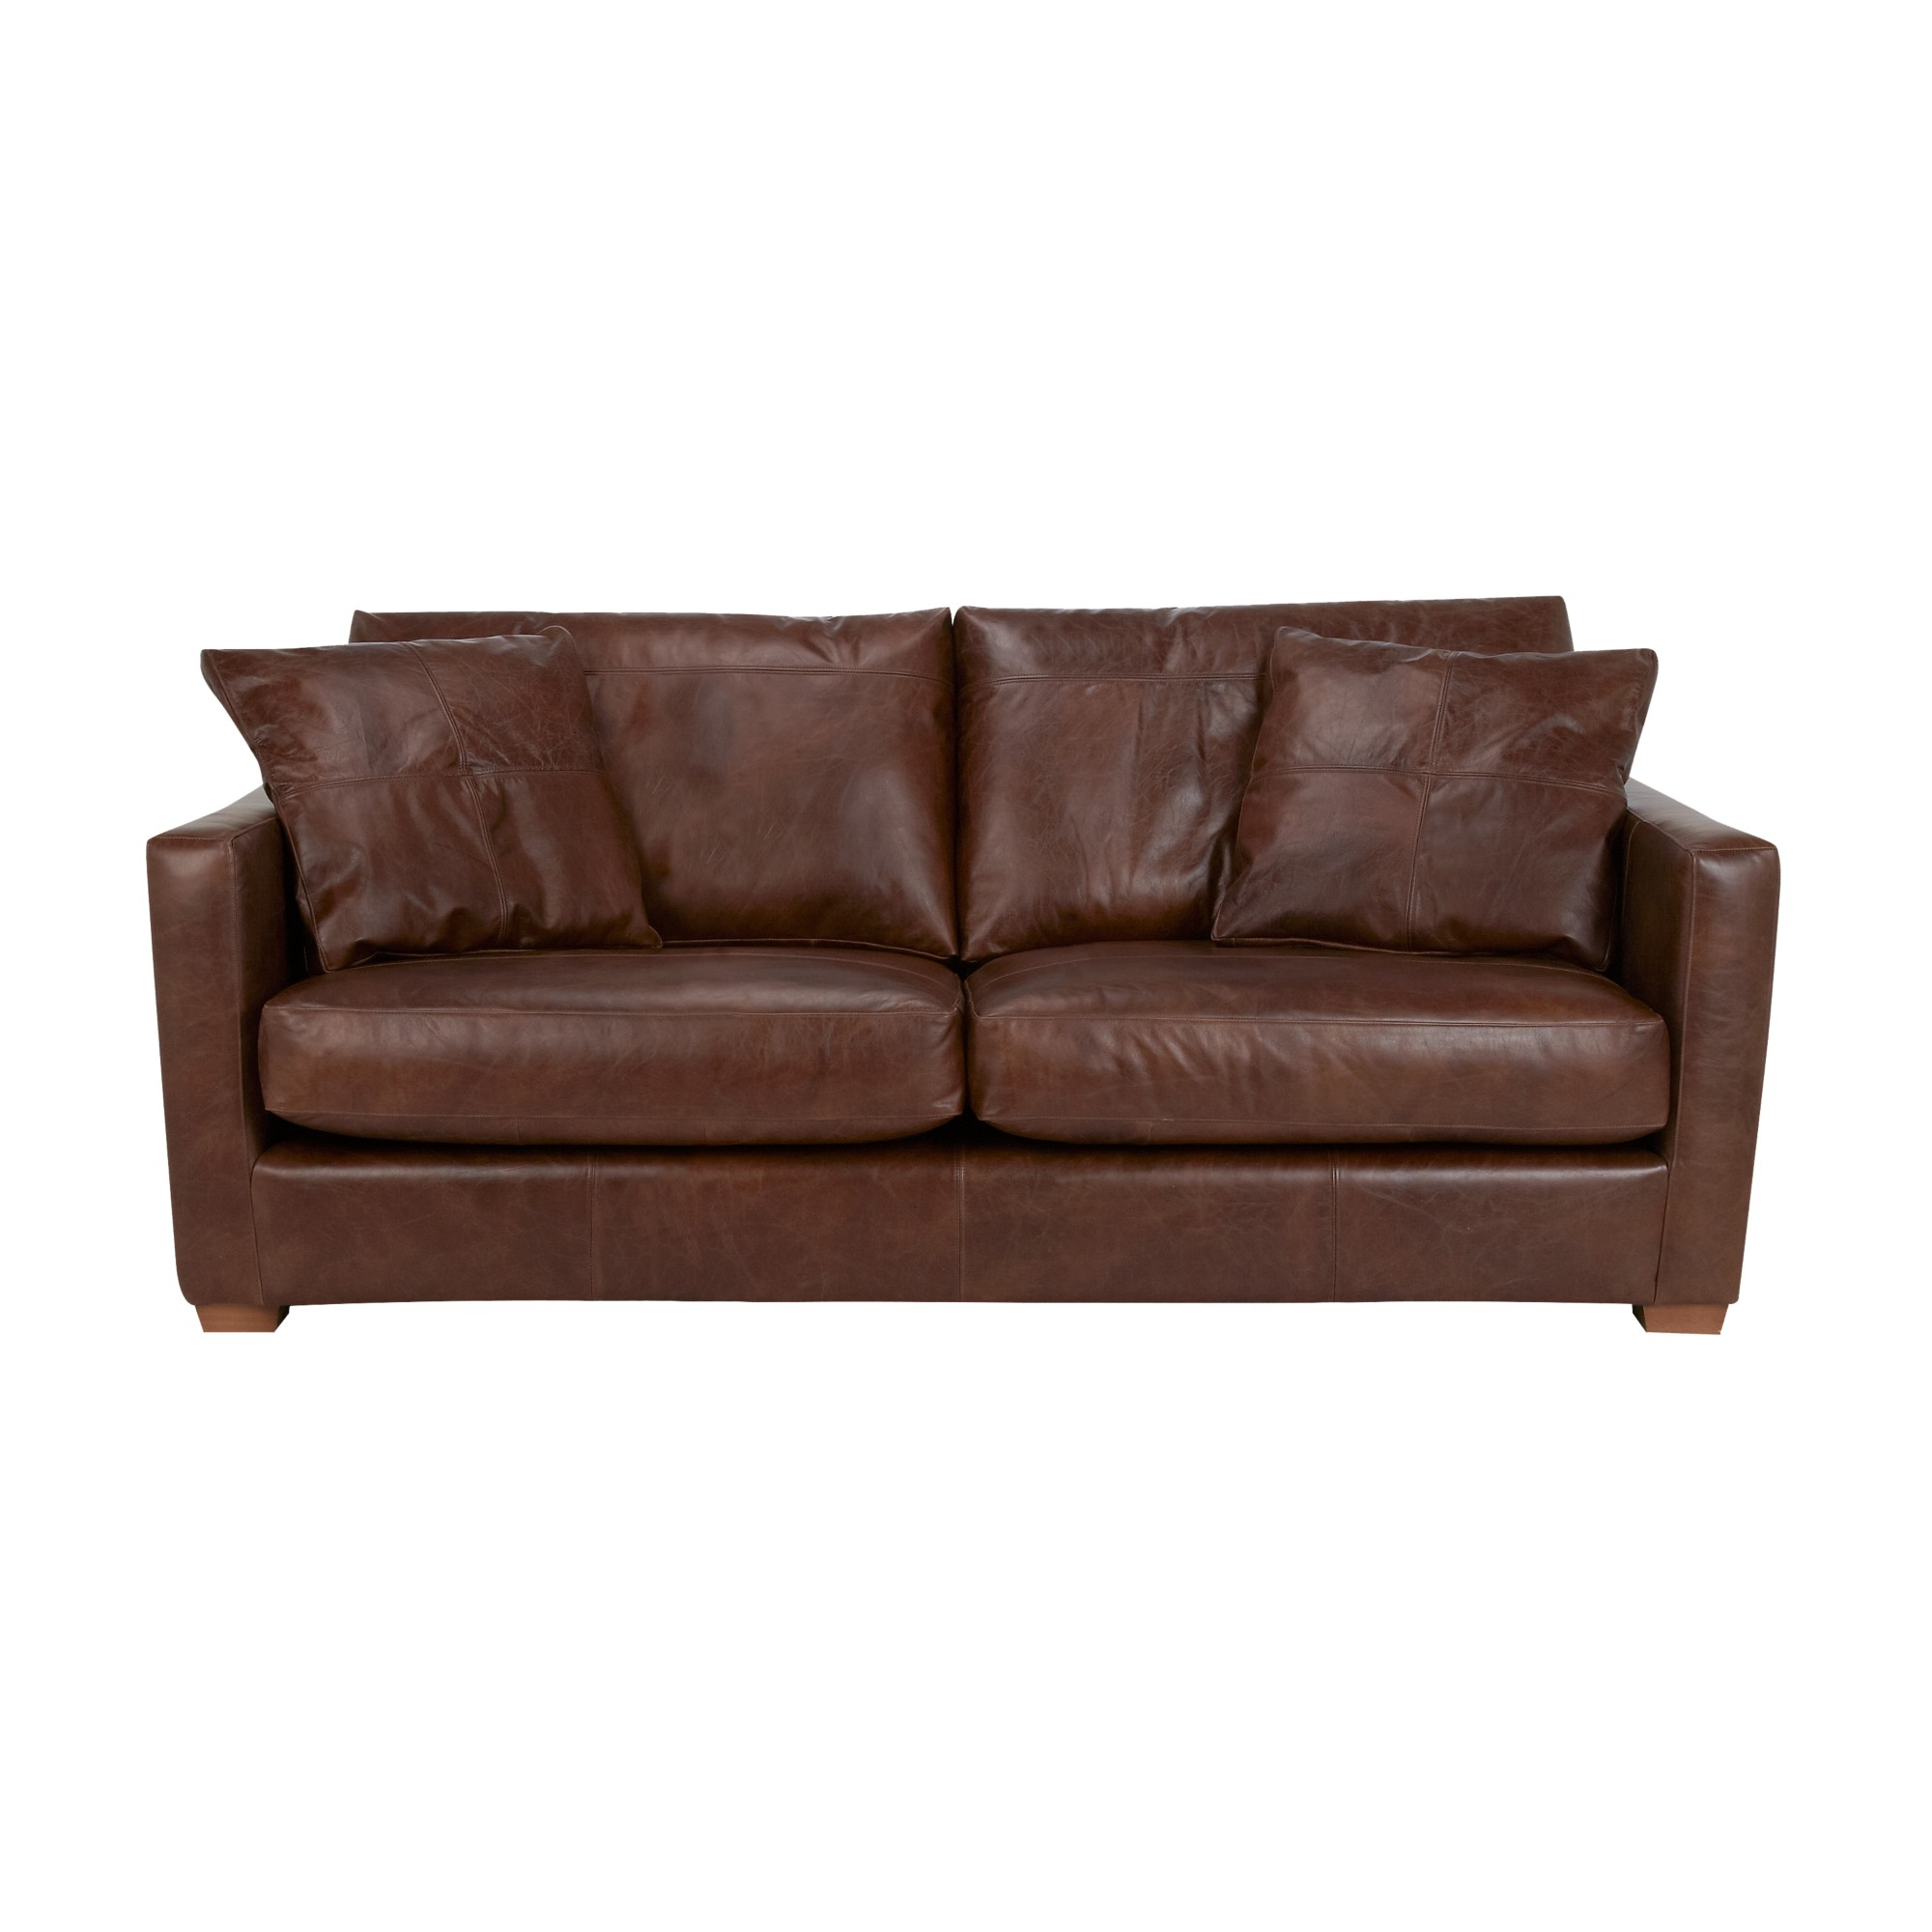 John Lewis Baxter Large Leather Sofa